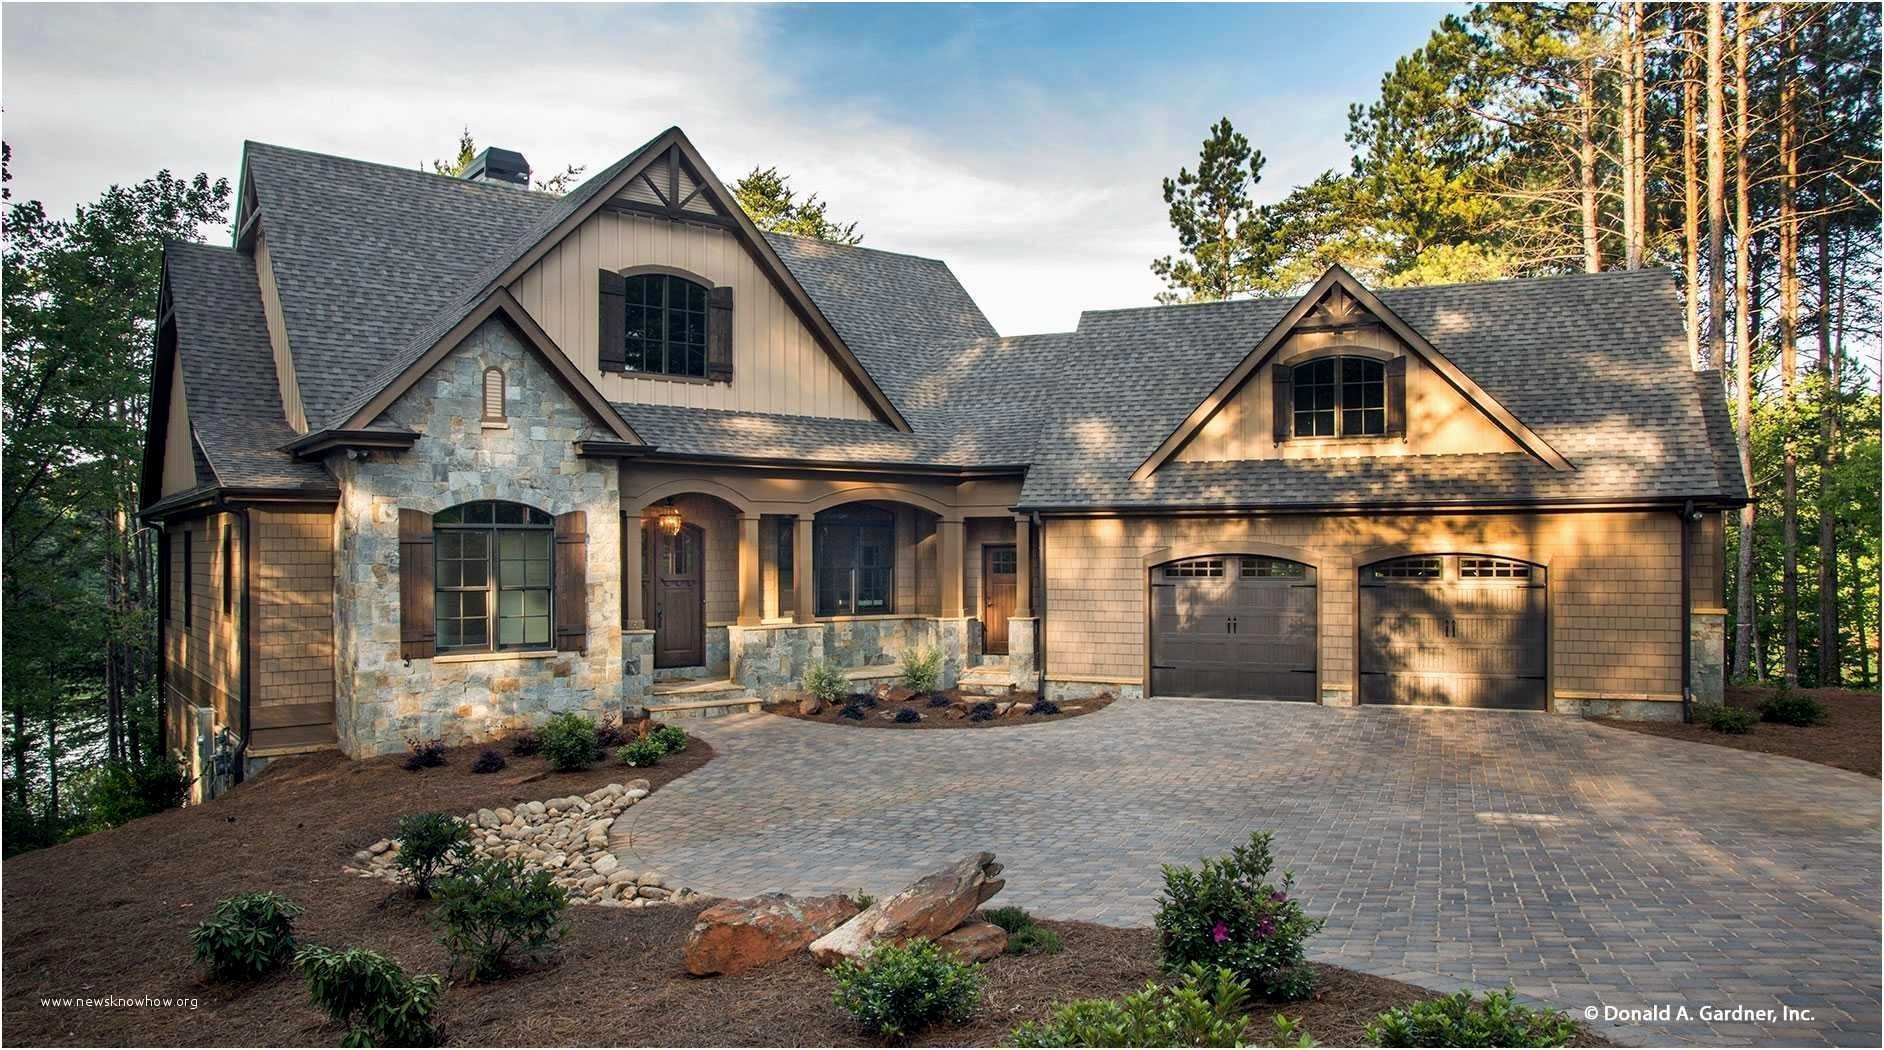 Craftsman Style Cabin Best Cabin House Plans With Walkout Basement Fresh Craftsman Cotta Craftsman House Plans Craftsman Style House Plans Basement House Plans